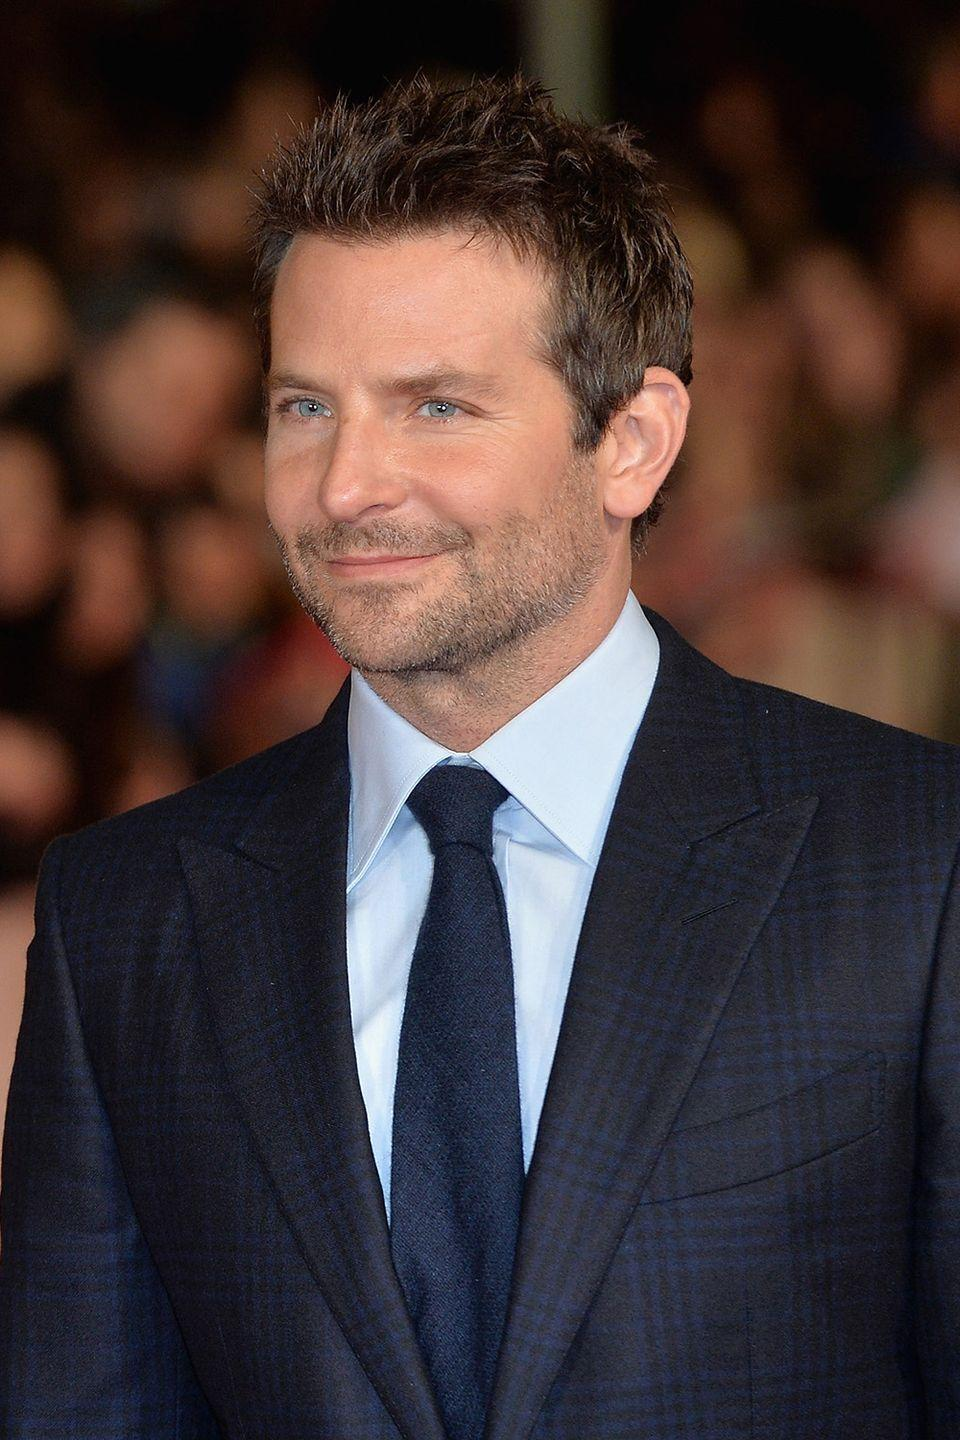 """<p>The actor discussed his sobriety in his <a href=""""http://www.gq.com/story/bradley-cooper-cover-story-january-2014"""" rel=""""nofollow noopener"""" target=""""_blank"""" data-ylk=""""slk:GQ"""" class=""""link rapid-noclick-resp"""">GQ</a> cover story back in 2013, explaining that at the age of 29 he felt 'if I continued it, I was really going to sabotage my whole life.'</p>"""